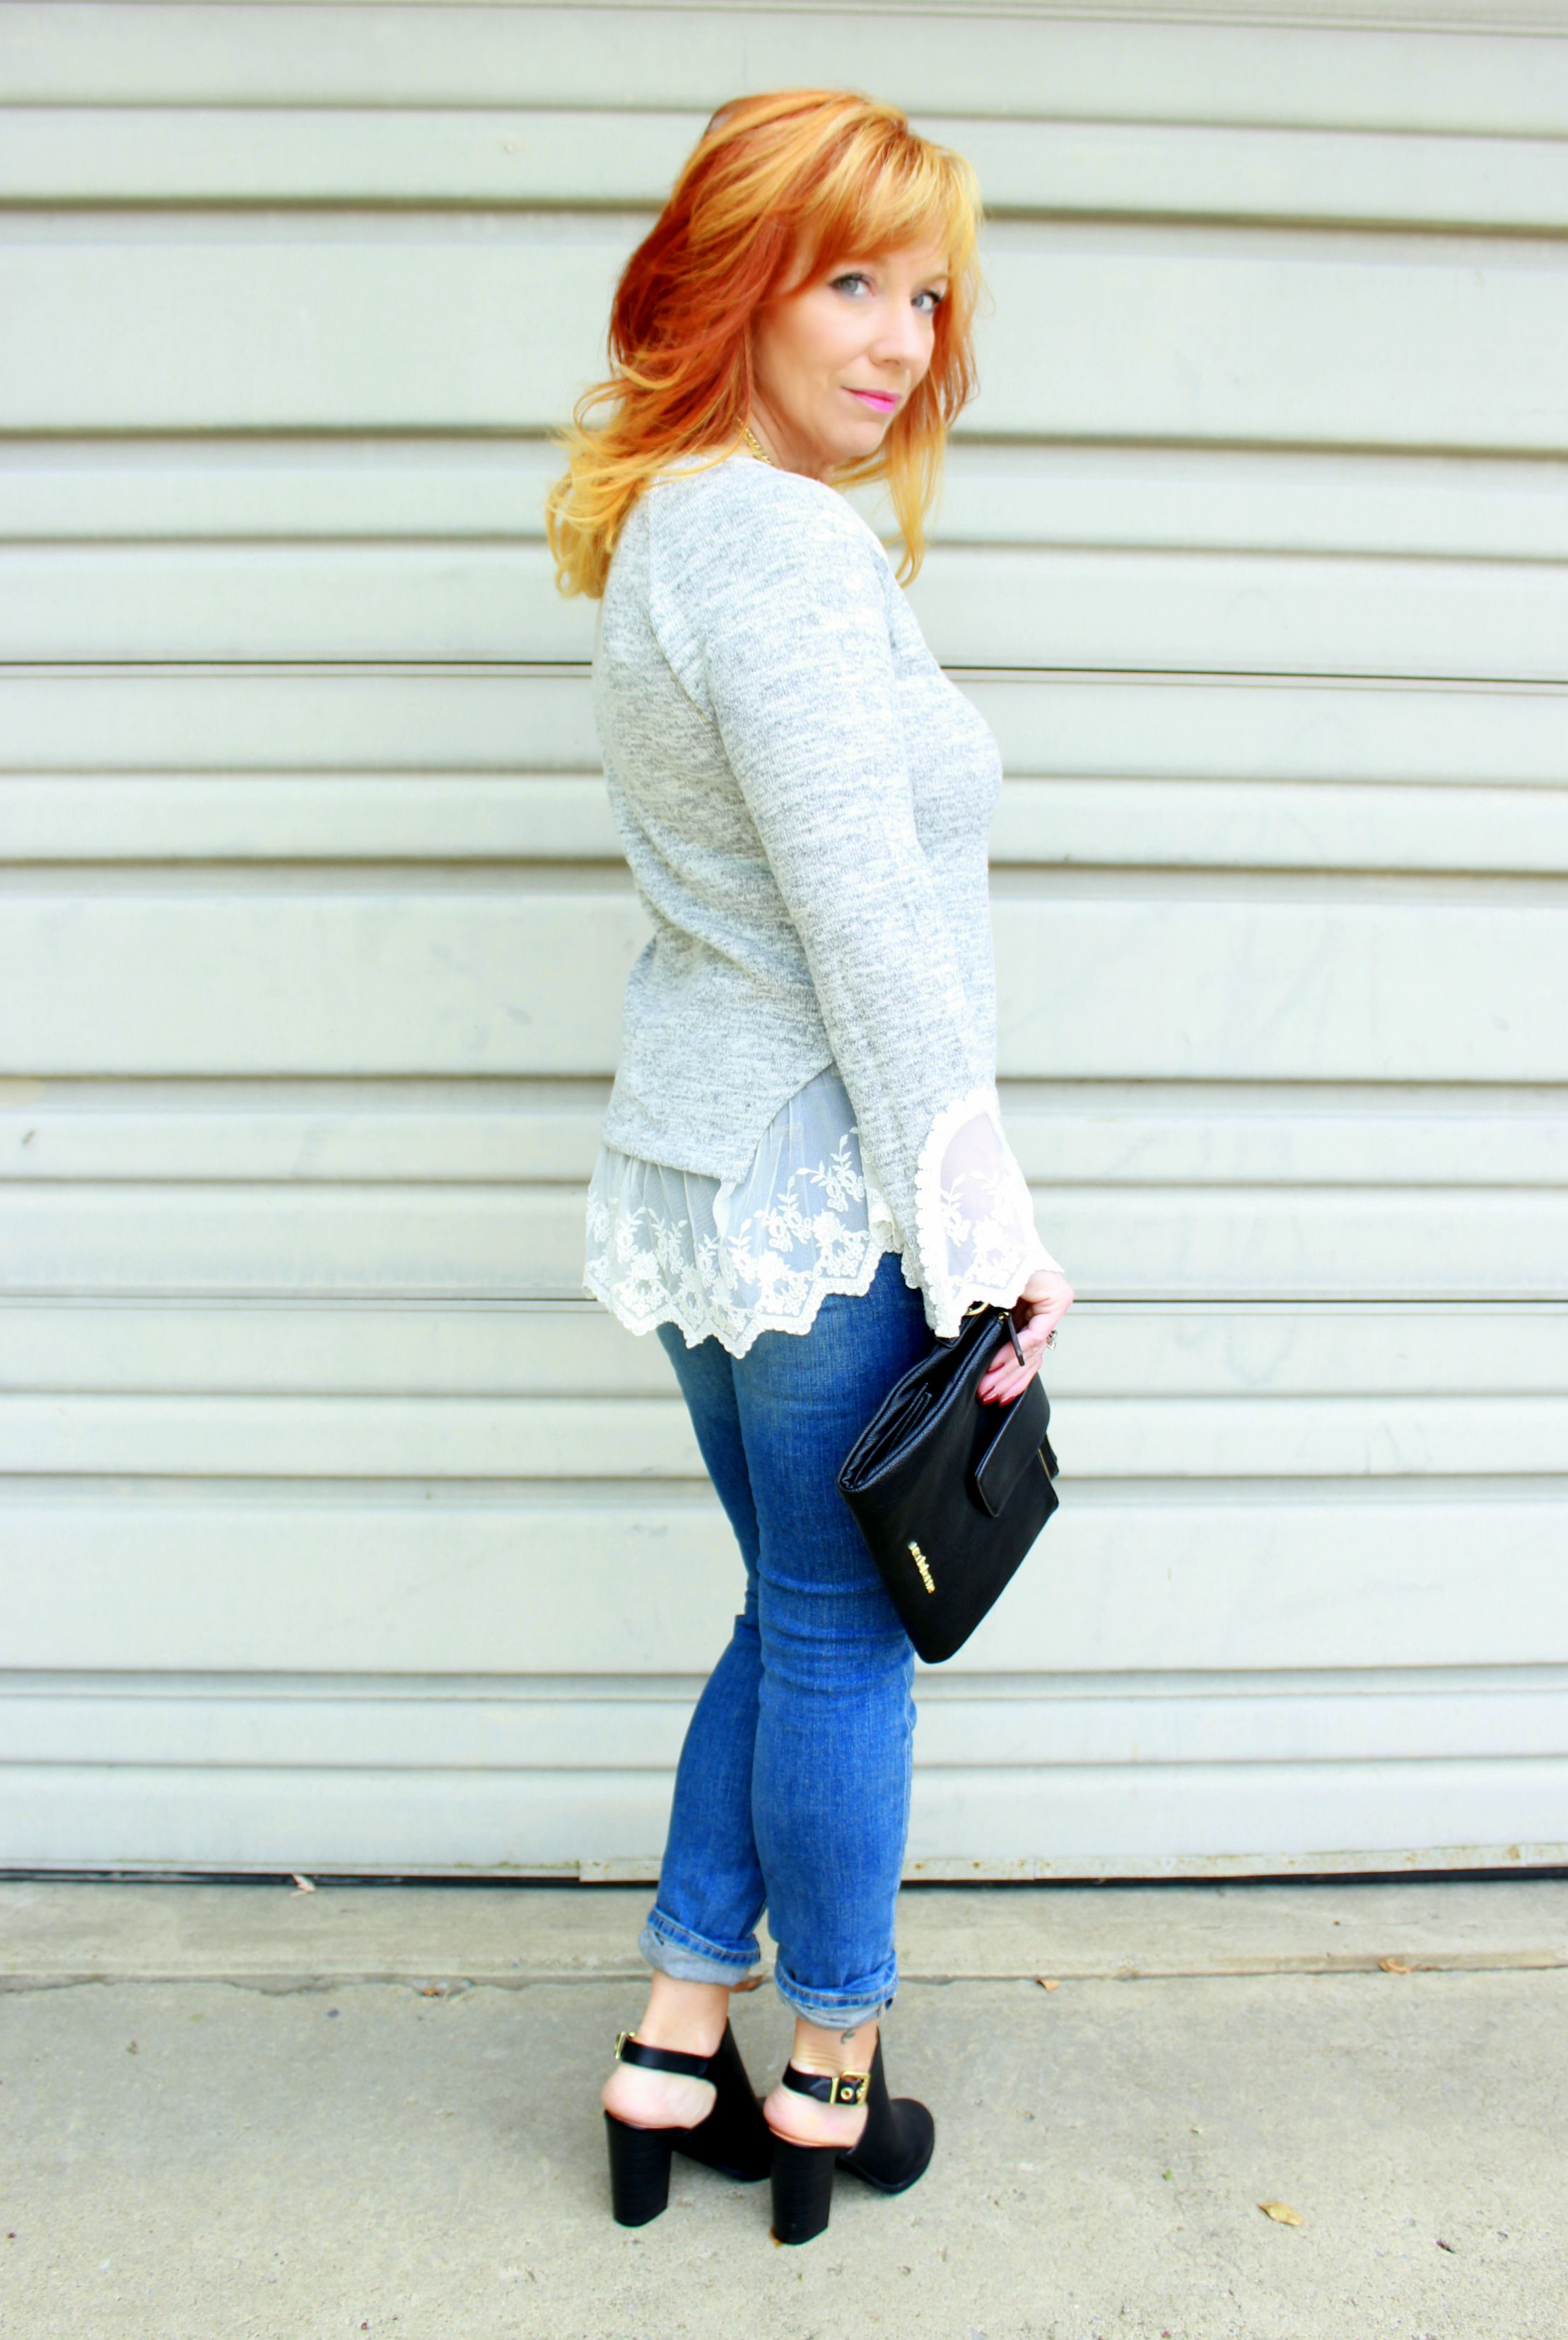 Lace Trimmed Sweater Amp Skinny Jeans A Nip In The Air